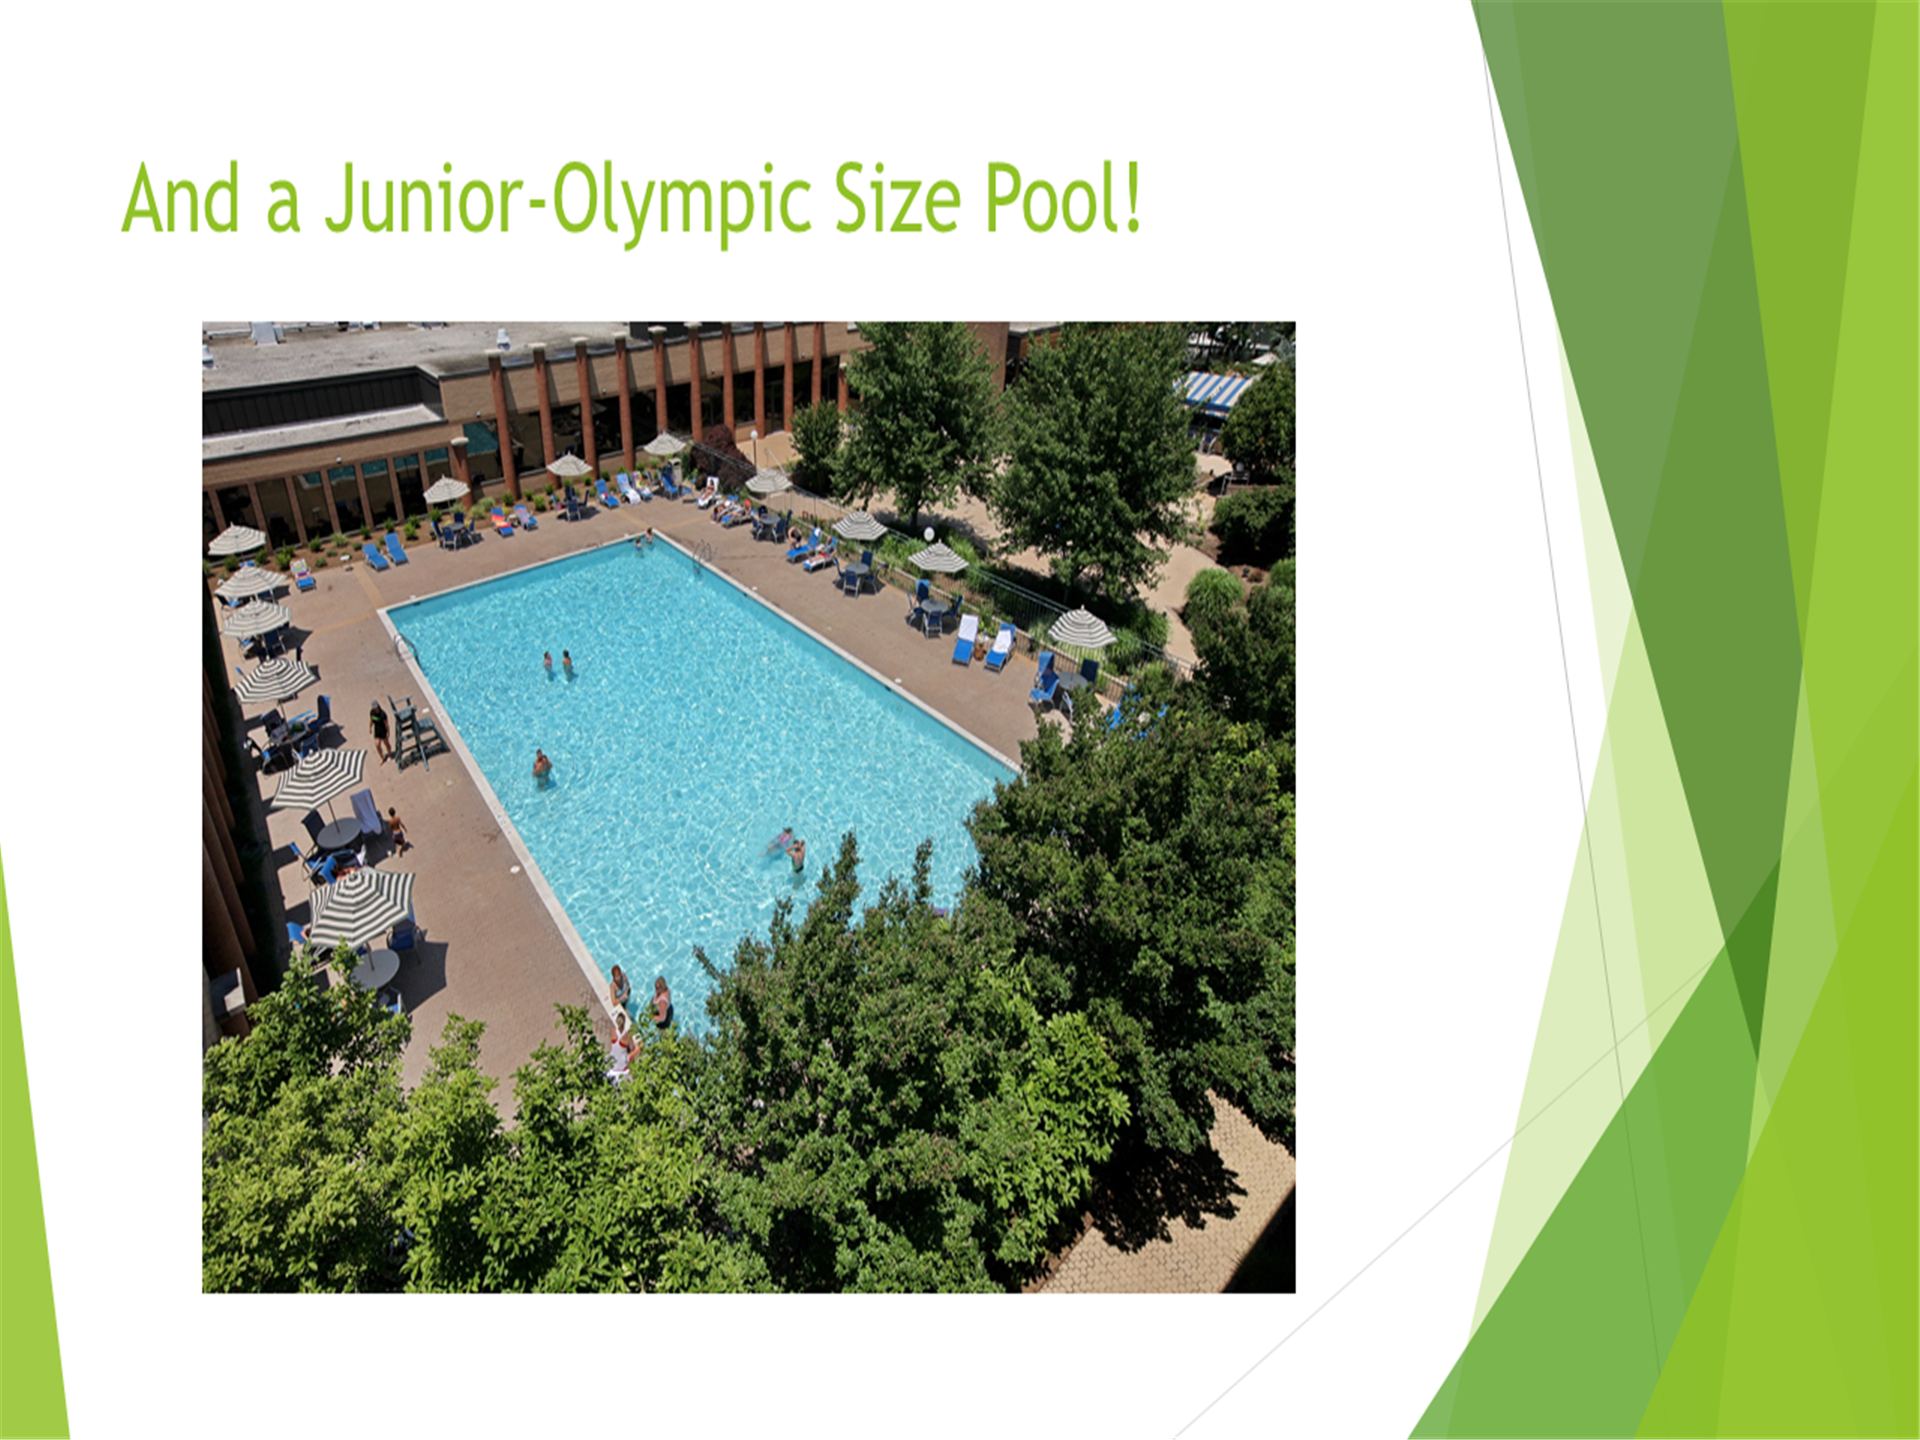 And a junior-Olympic size pool! Image of the pool area with tables, chairs and umbrellas setup.